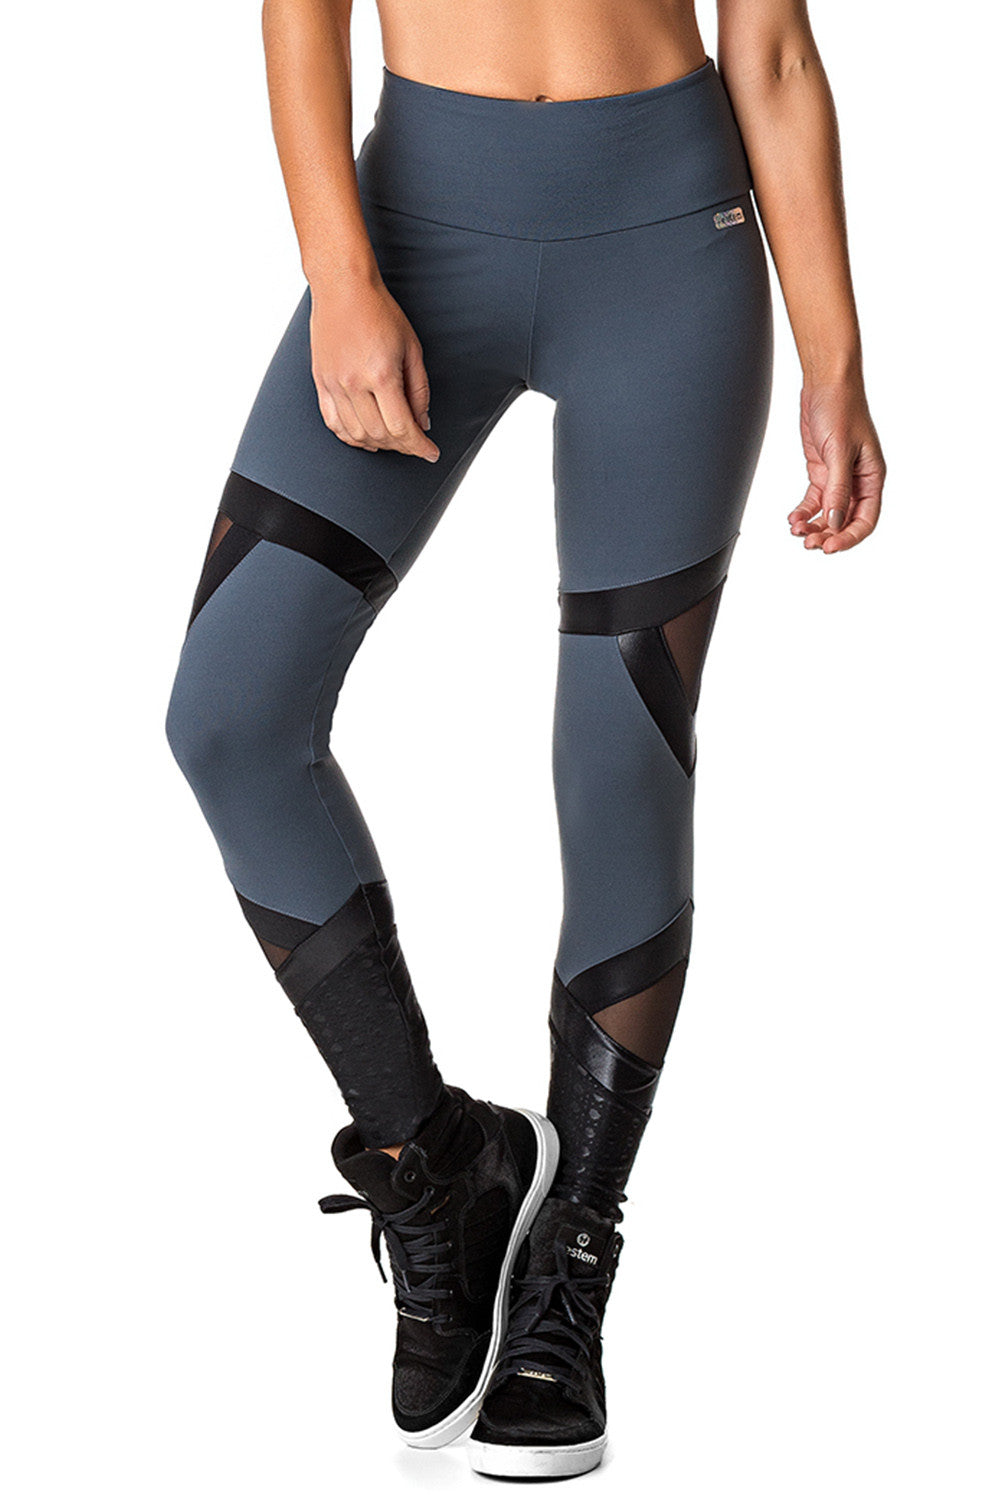 Grey Meshed Leggings-IpanemaGirl